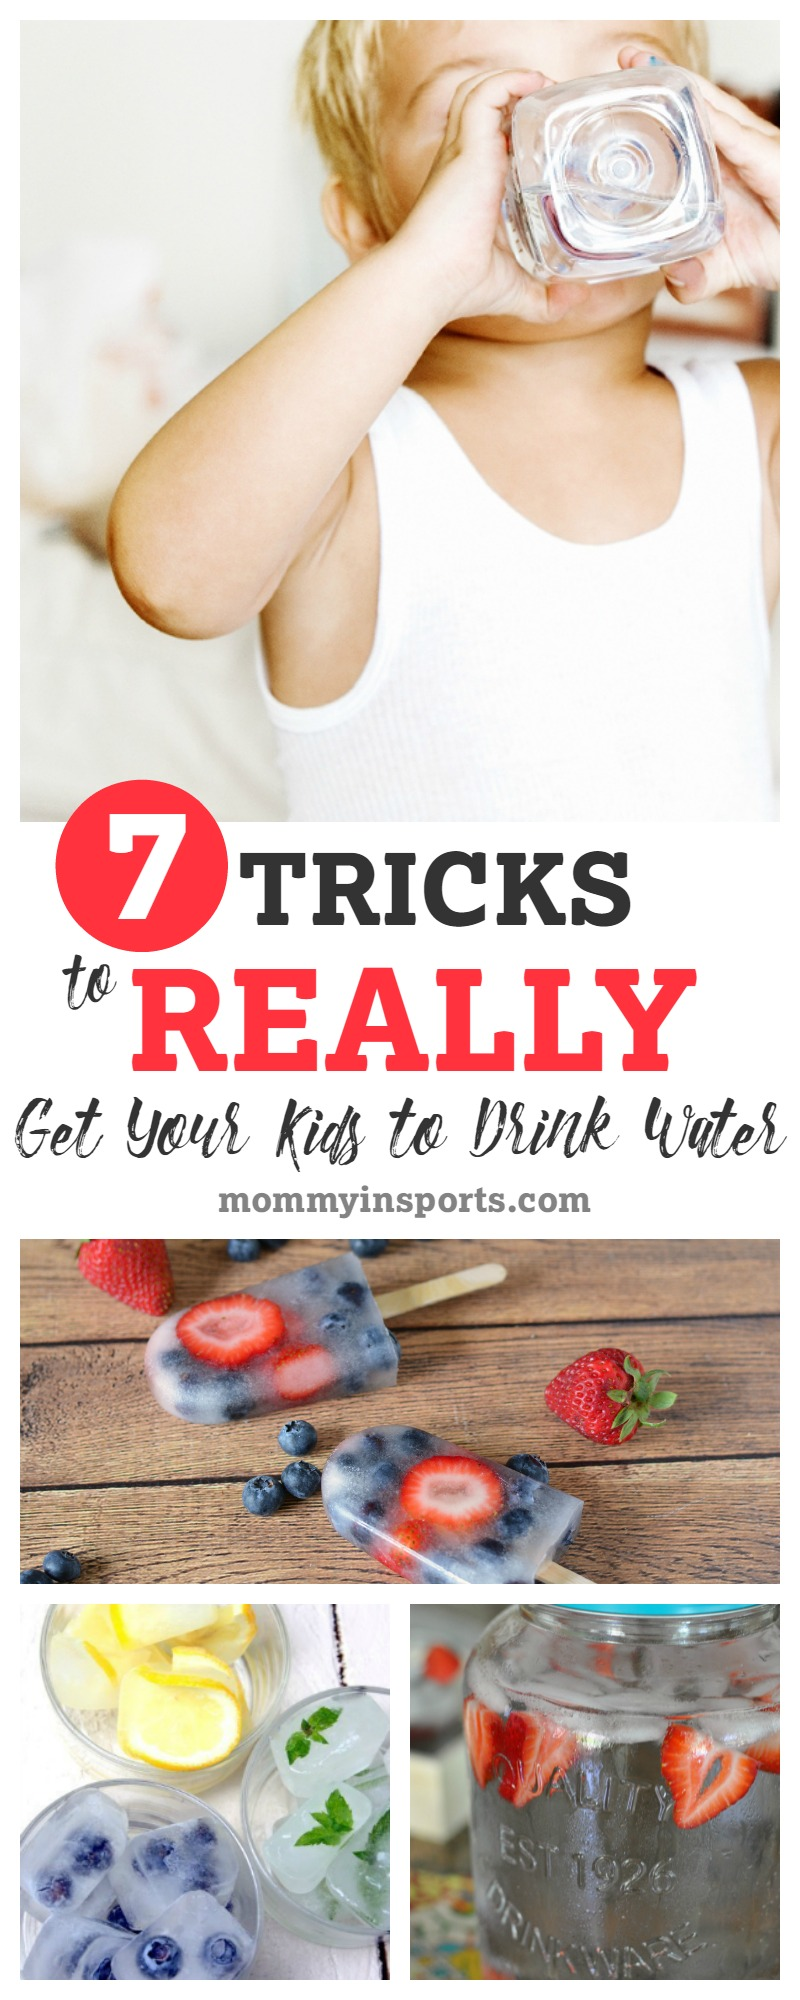 Struggling to get your kids to drink water? We all are! But these 7 tricks really are simple, fun, and work!